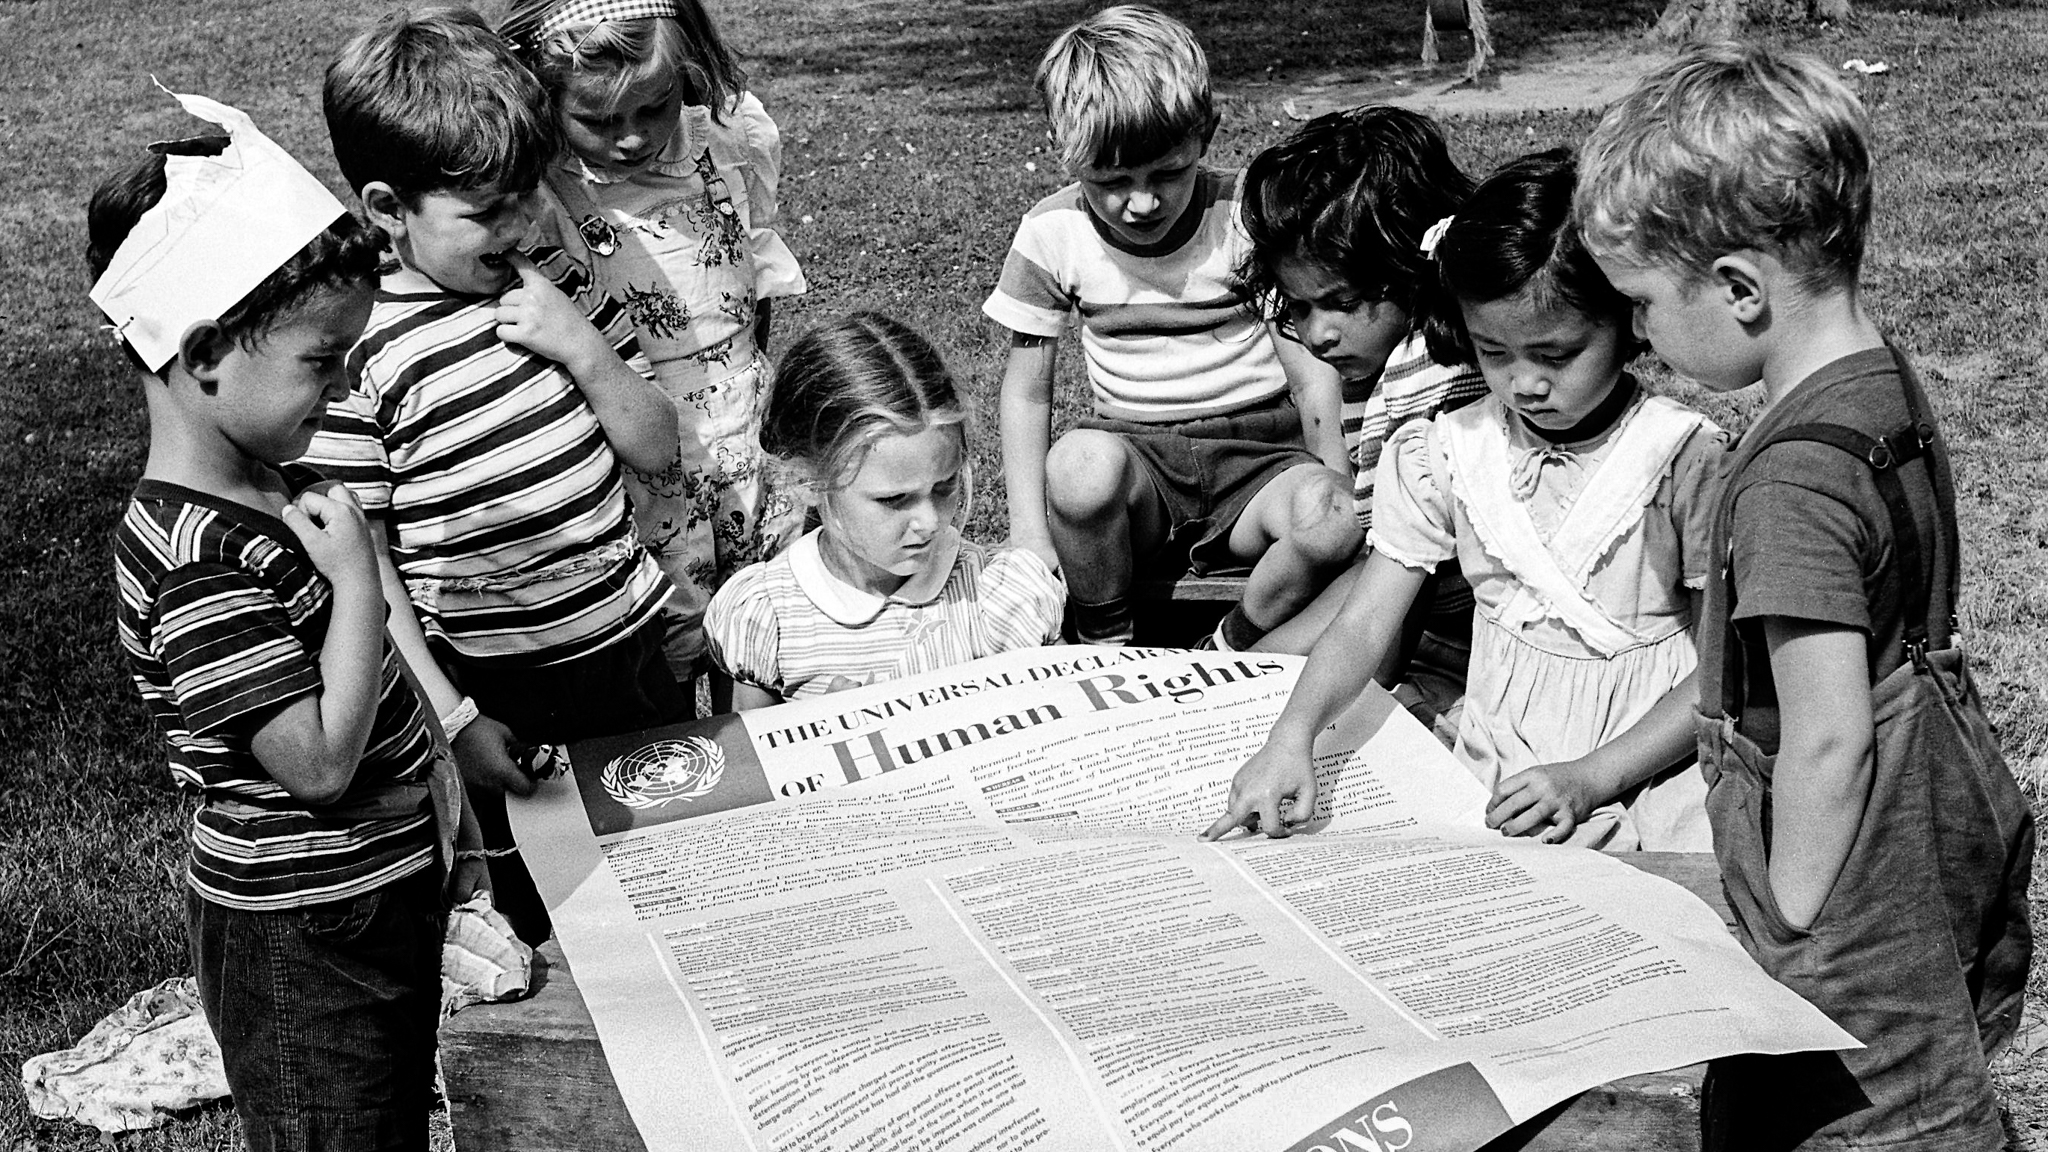 Department highlights human rights - State Magazine